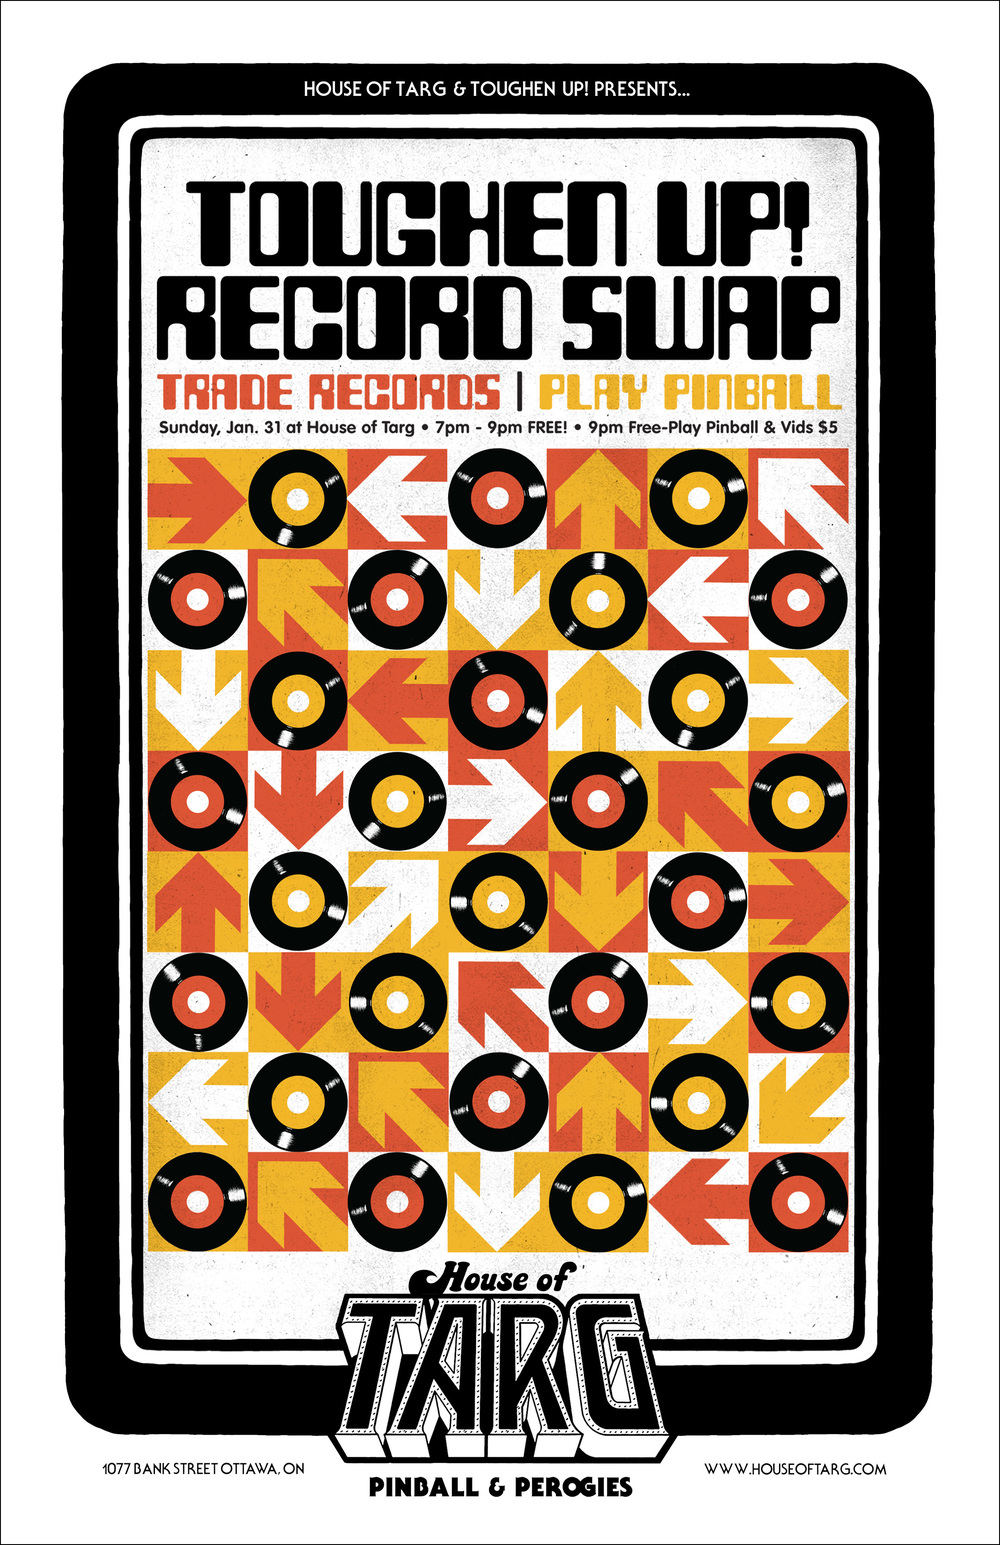 "TOUGHEN UP! RECORD SWAP Sun Jan 31 7pm - 9pm FREE Trade, sell or buy platters from any genre, time period and size [12"", 10"", 7""]. Everyone Welcome! GET THE STRAIGHT SKINNY HERE"